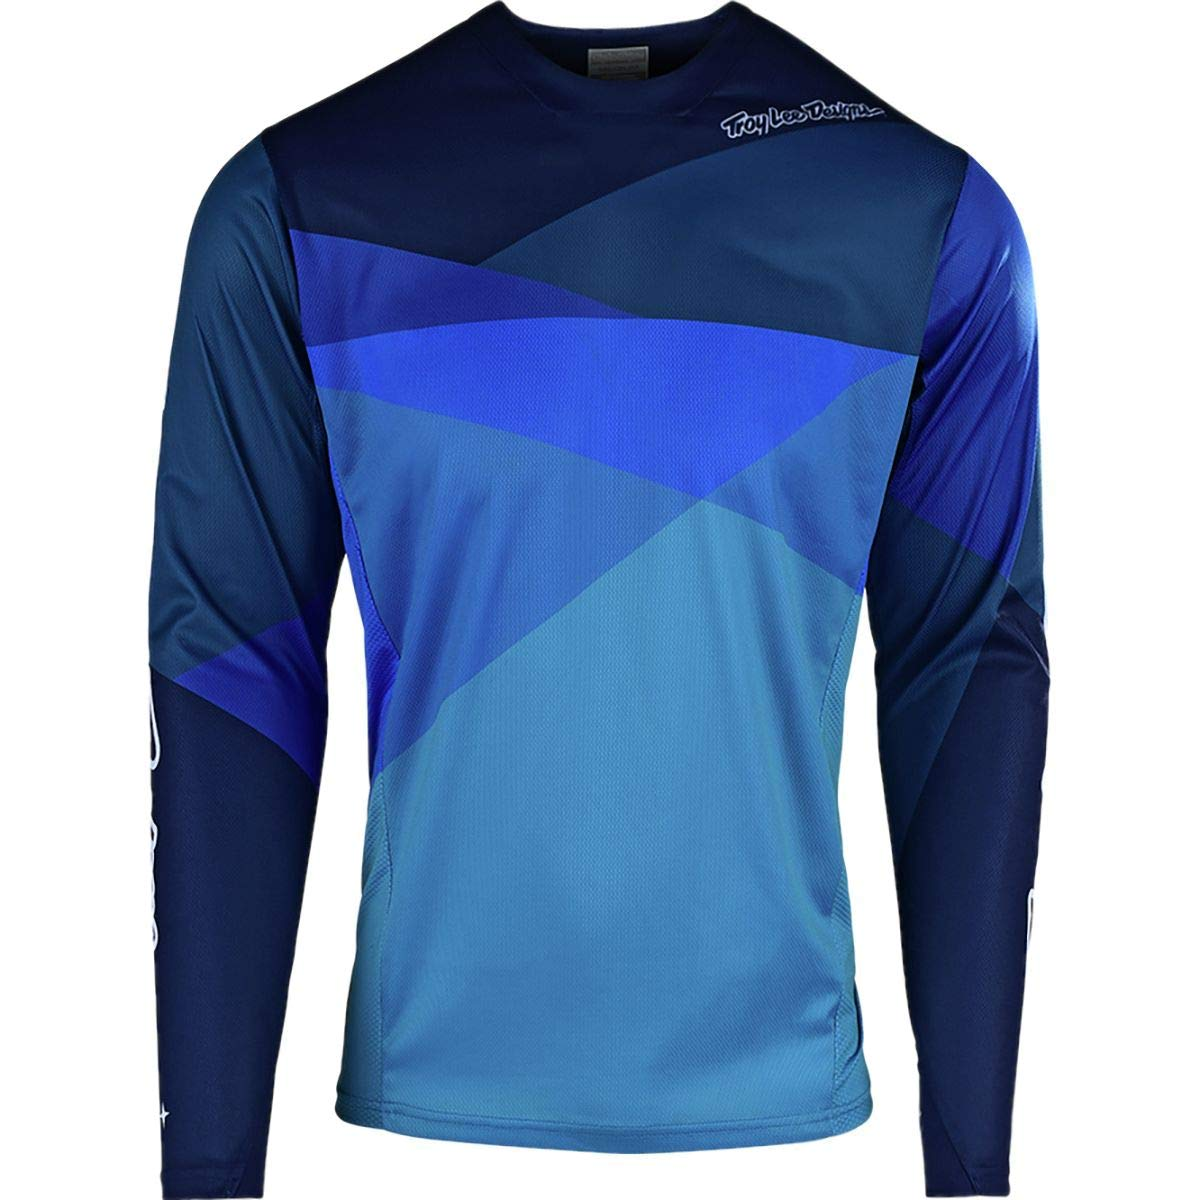 Troy Lee Designs Sprint Jersey - Men's Jet Ocean/Blue, S